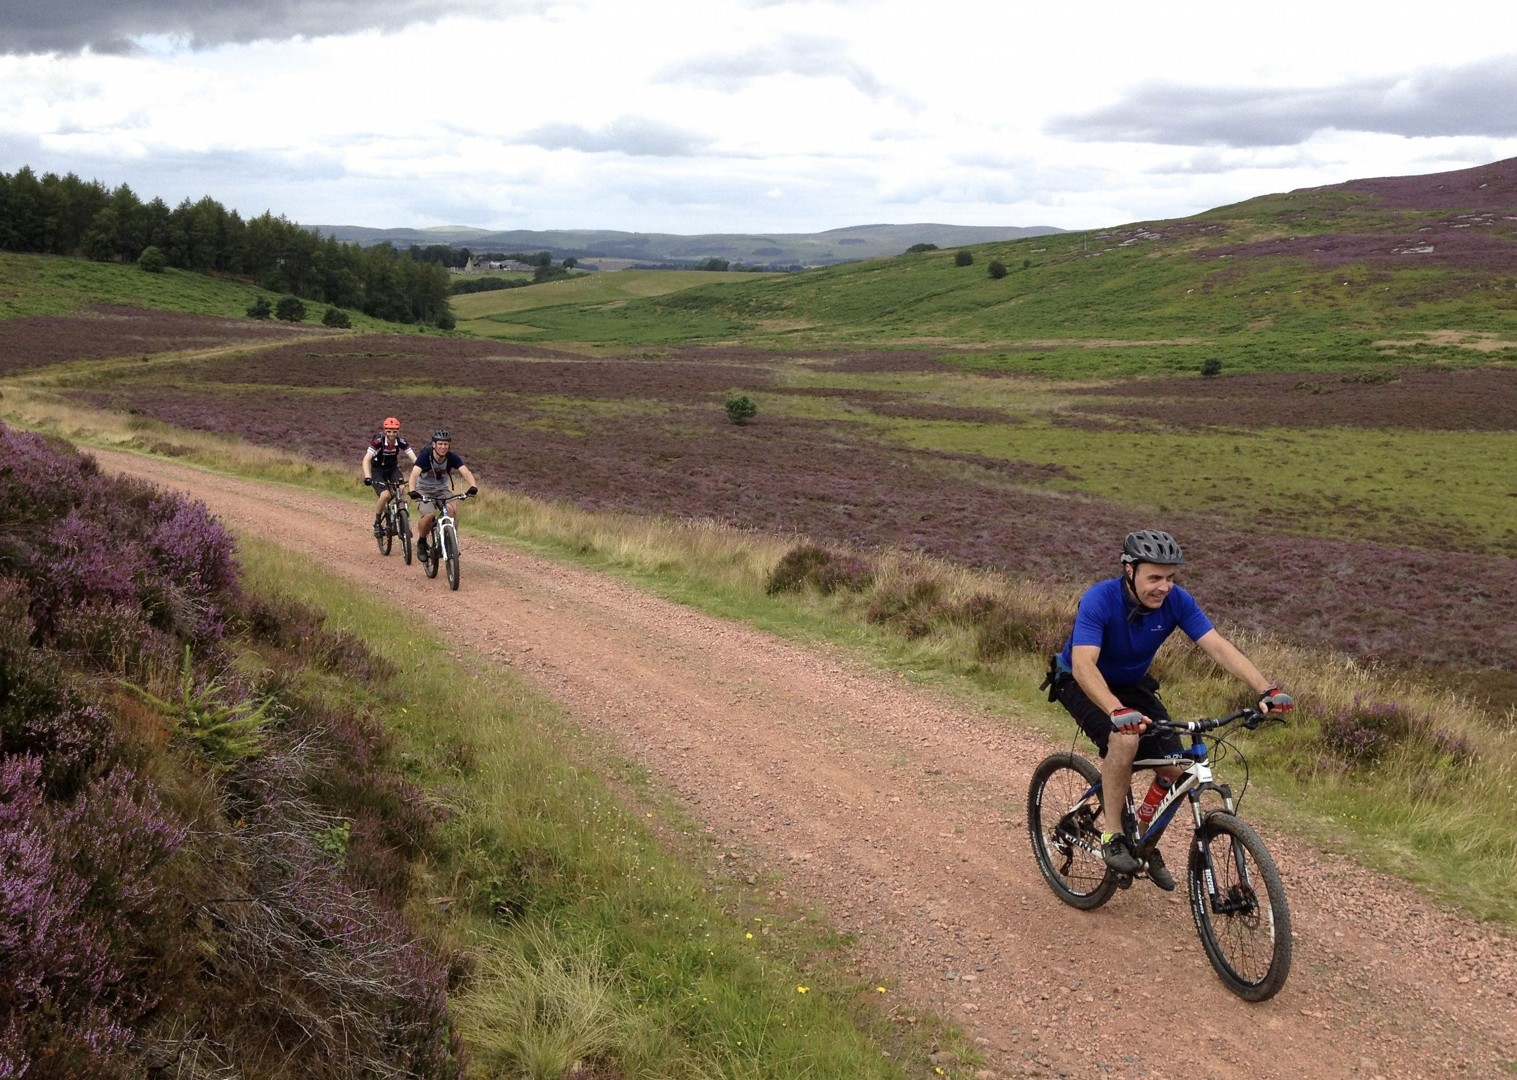 Sandstoneway2.jpg - UK - Northumberland - Sandstone Way - Self-Guided Mountain Bike Weekend - Mountain Biking